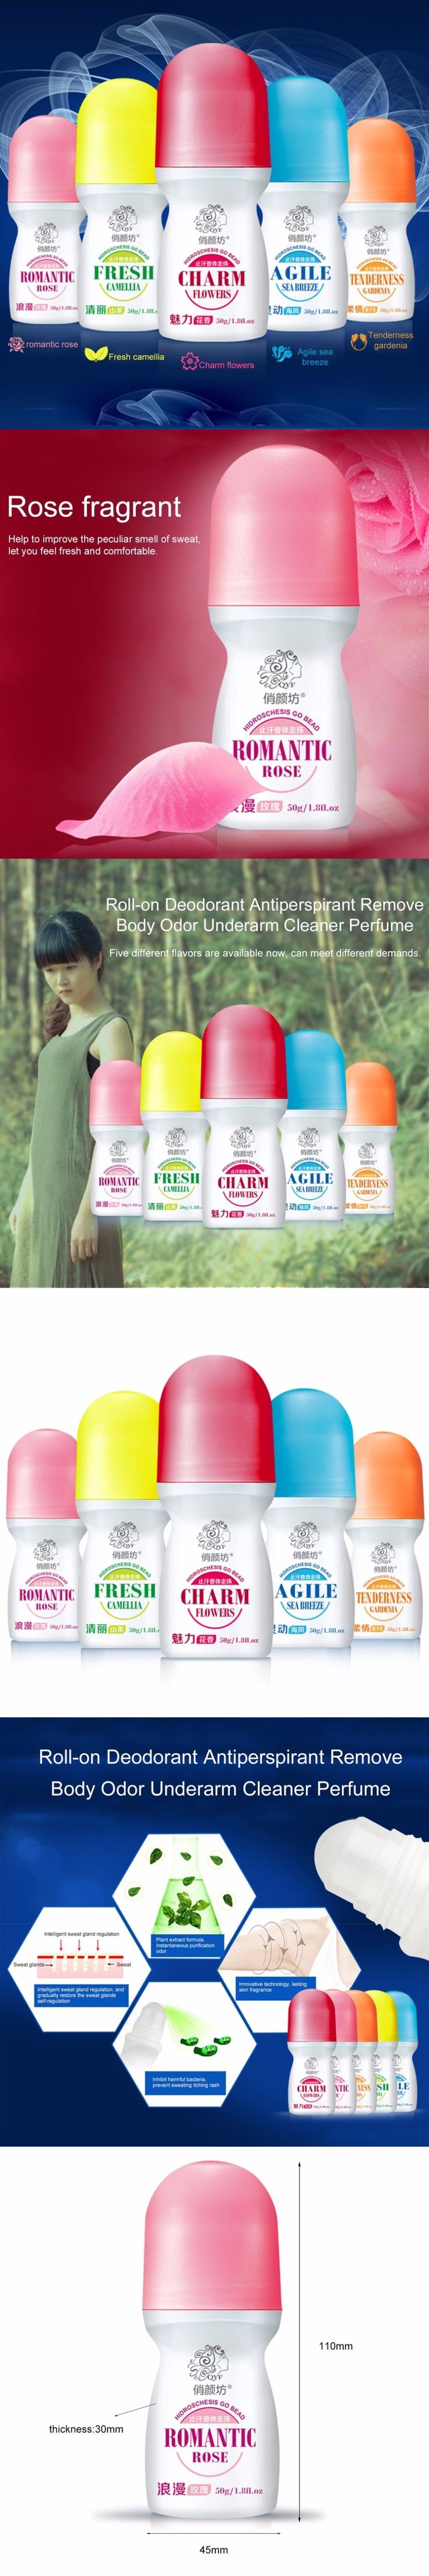 3pcs/lot Roll-on Deodorant Antiperspirant Remove Body Odor Portable Body Lotion Underarm Cleaner Perfume 24 hours Fragrance Hot